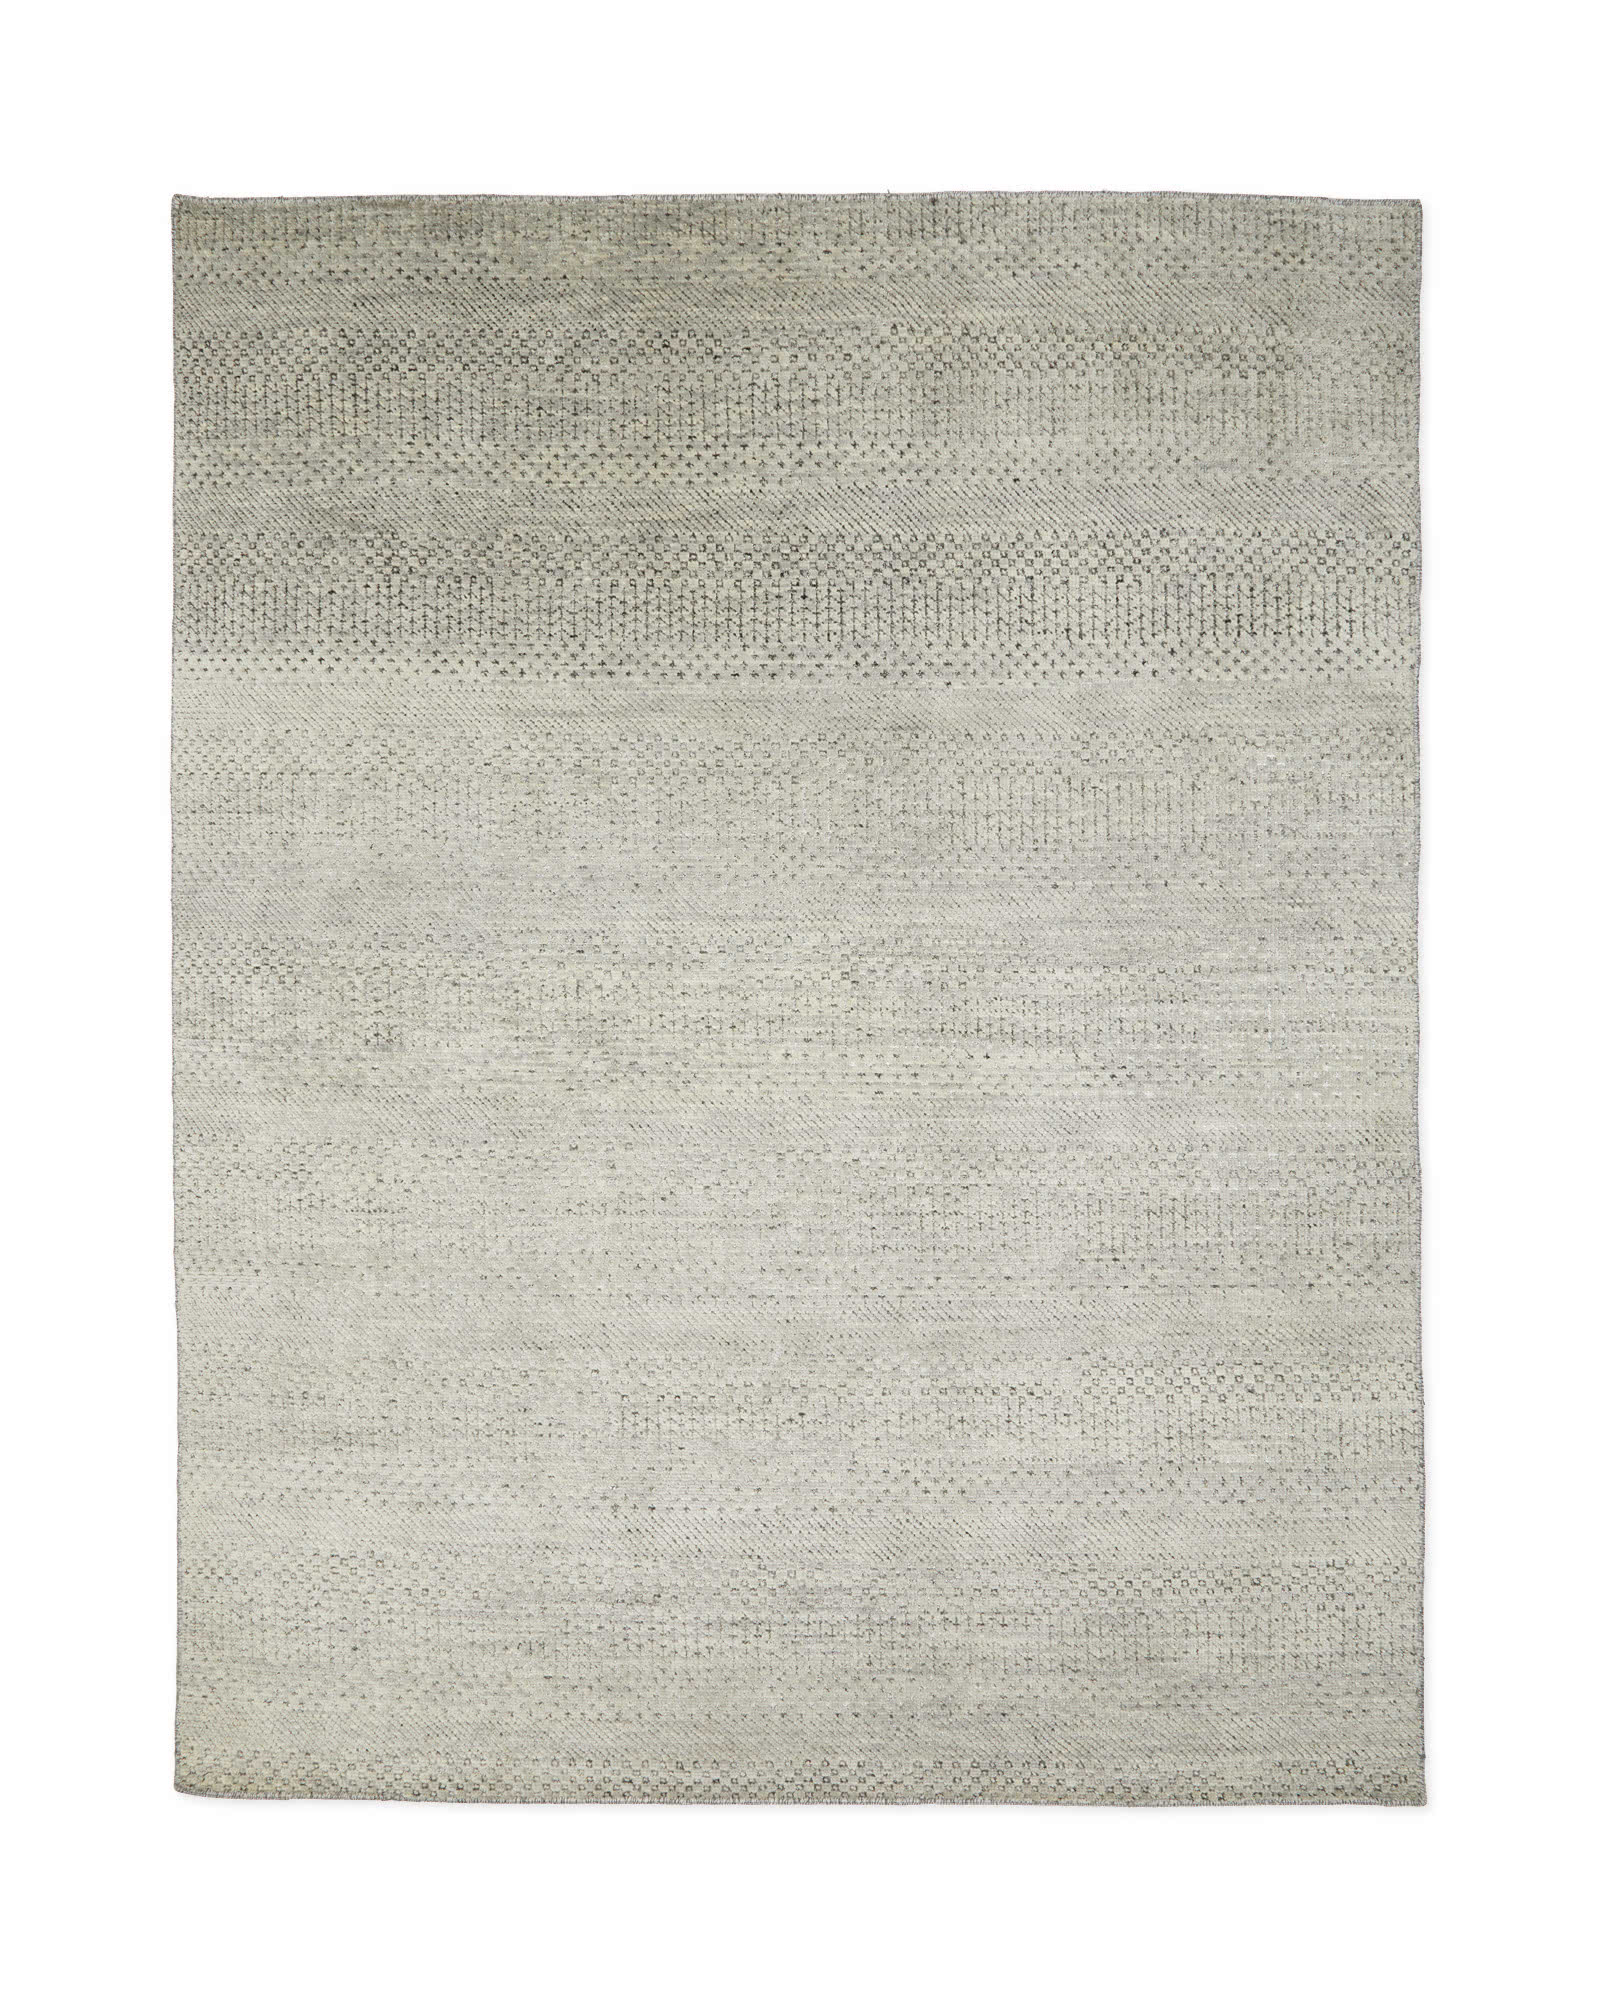 Dipsea Hand-Knotted Rug, Fog